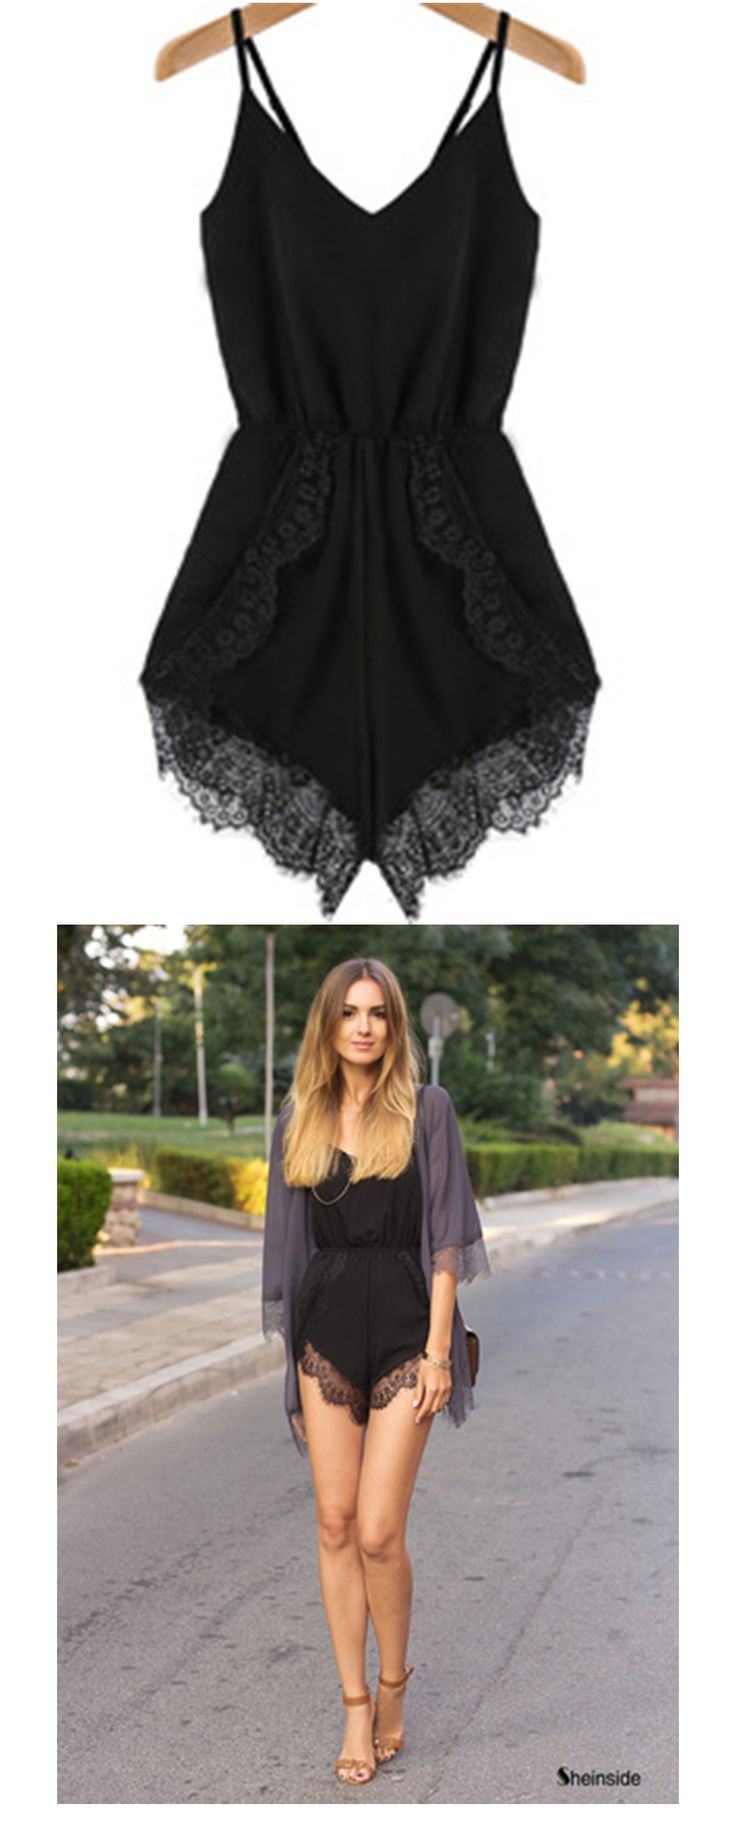 Jumpsuits Almost a must for women .Black jumpsuits or white jumpsuits can be a good easy outfit ! If you like lace rompers, short sexy jumpsuit is a nice choice for hot summer ! Black Spaghetti Strap Lace Chiffon Jumpsuit at romwe .com.